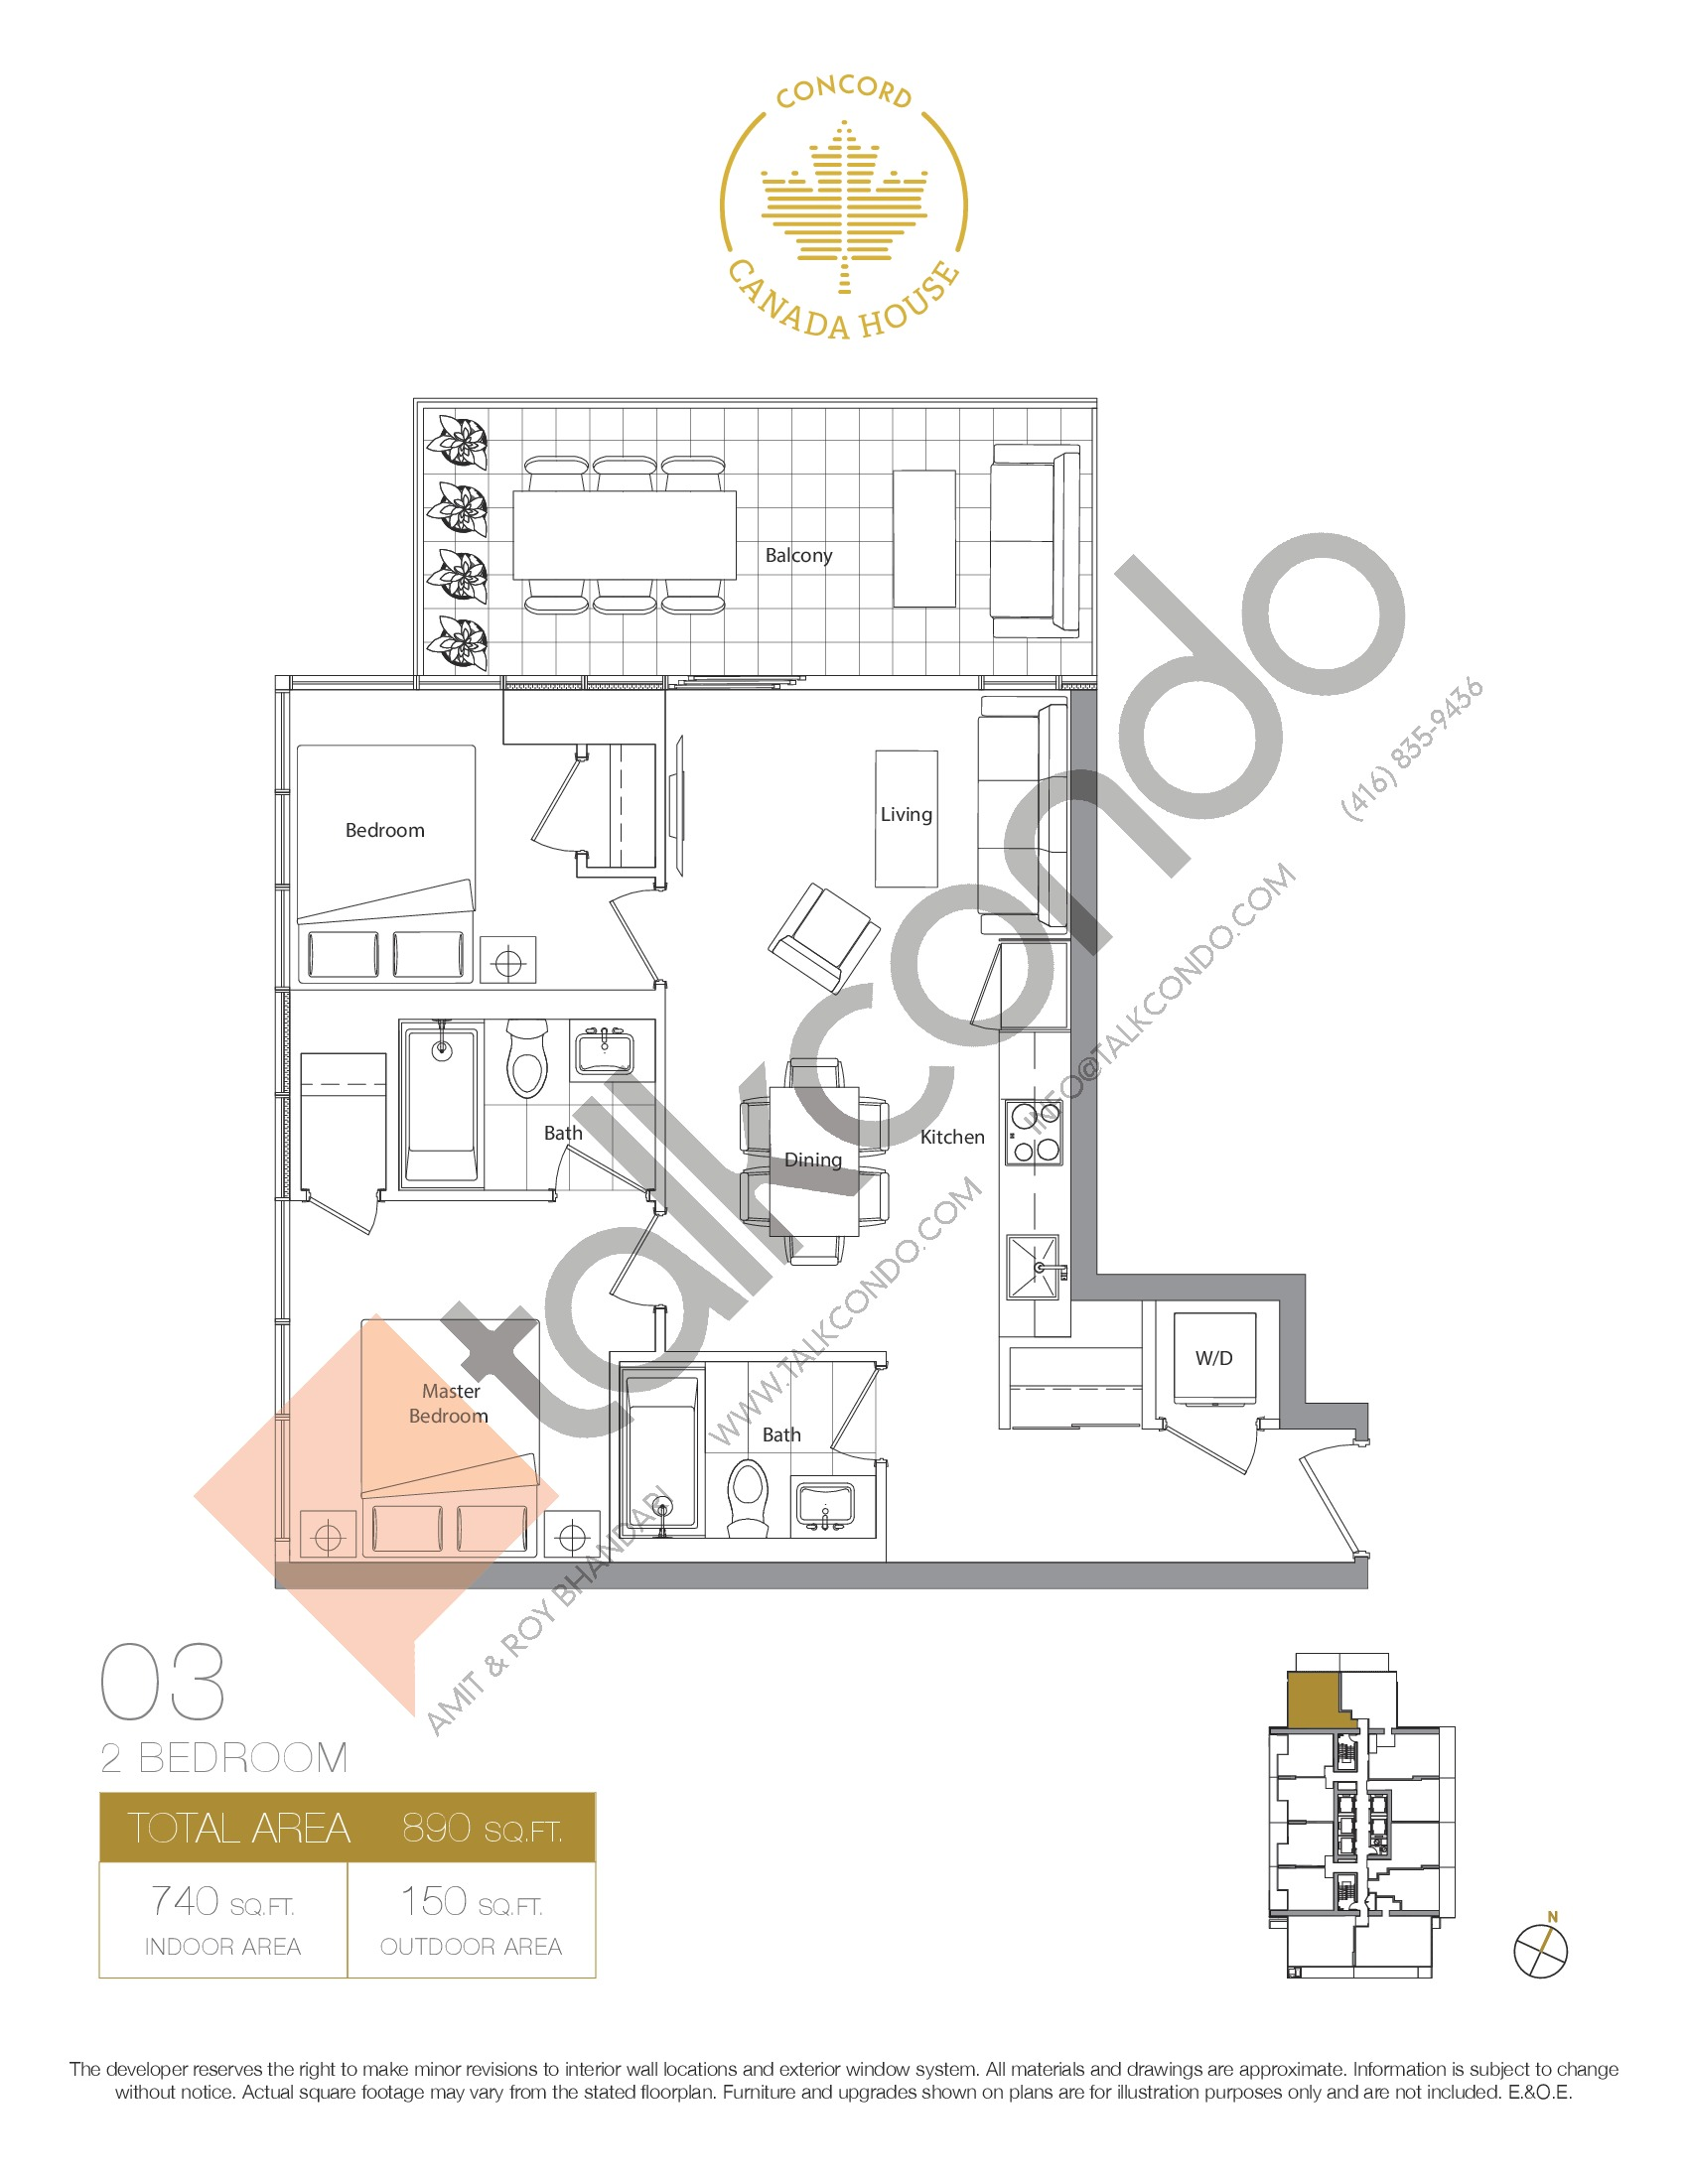 03 - West Tower Floor Plan at Concord Canada House Condos - 740 sq.ft